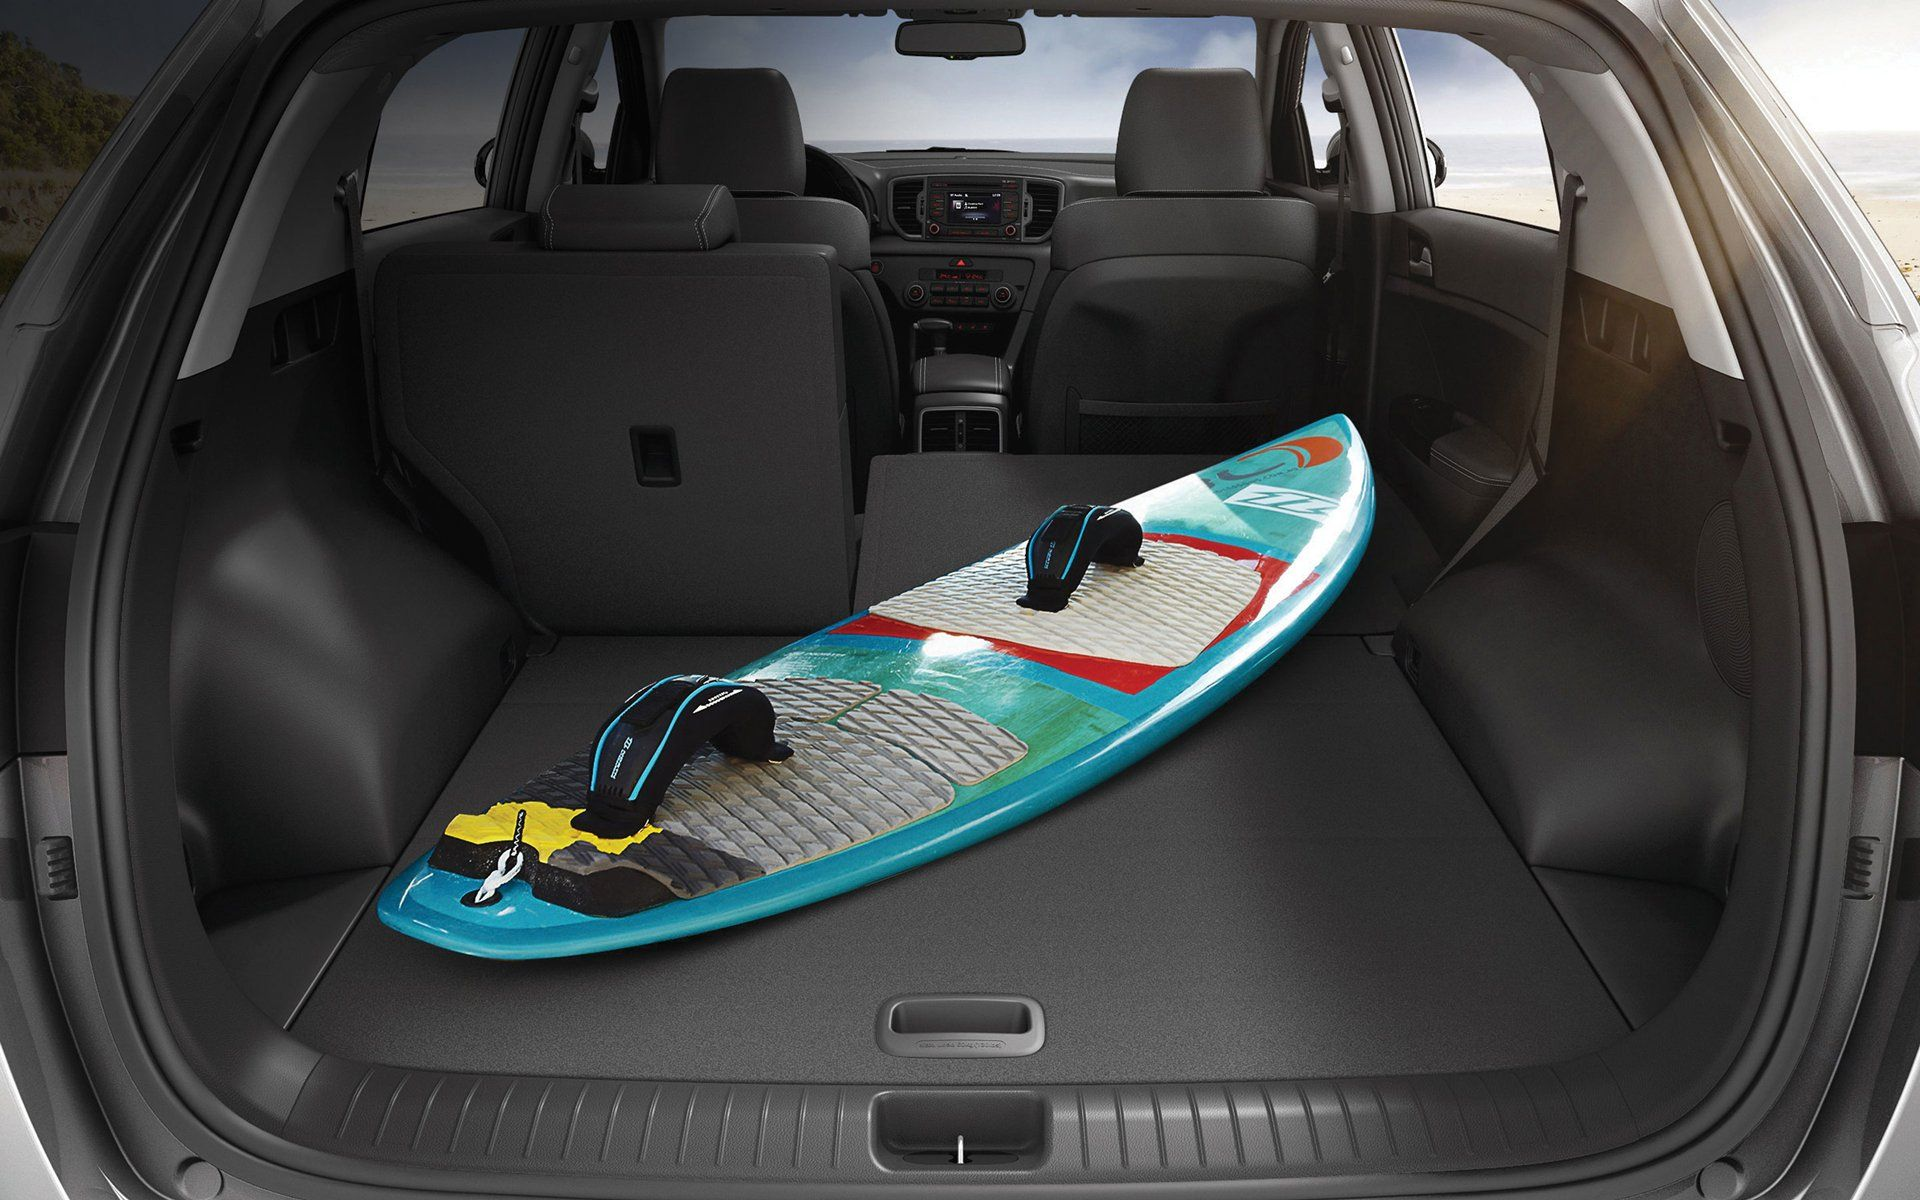 With Its Expanded Cargo Space The Sportage Has Ample Capacity For